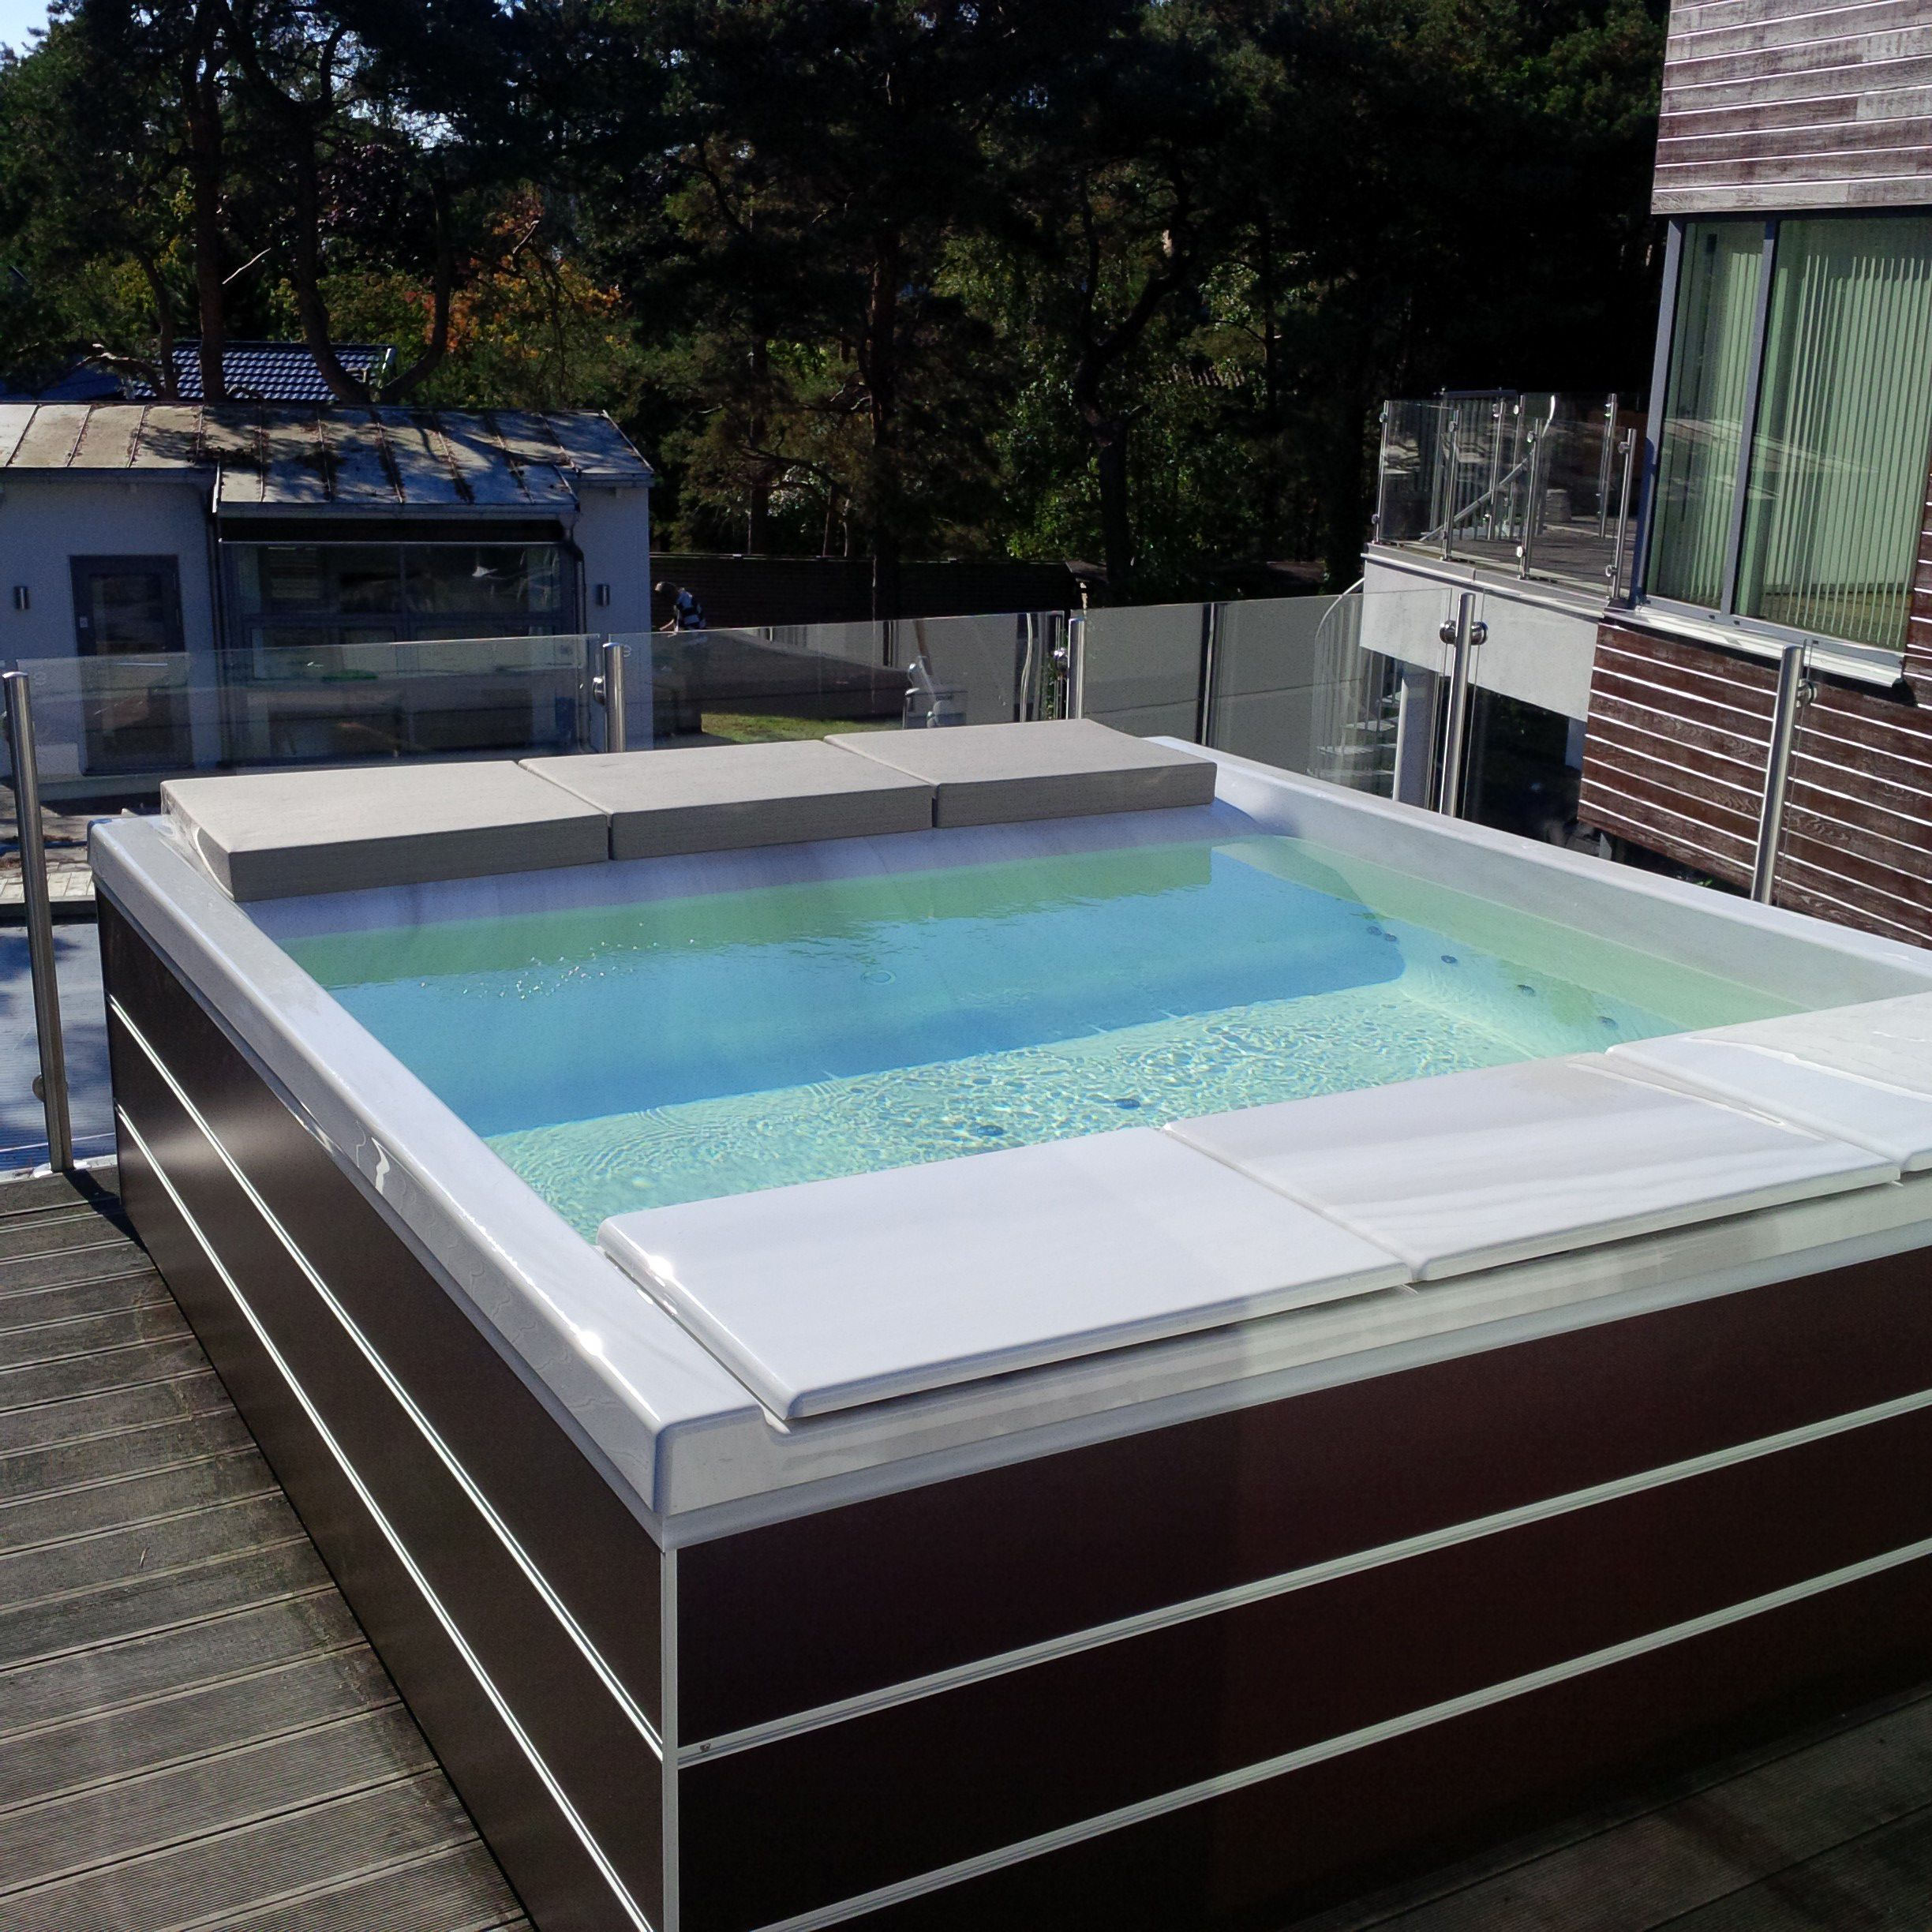 Our minipools defy even the harshest temperatures